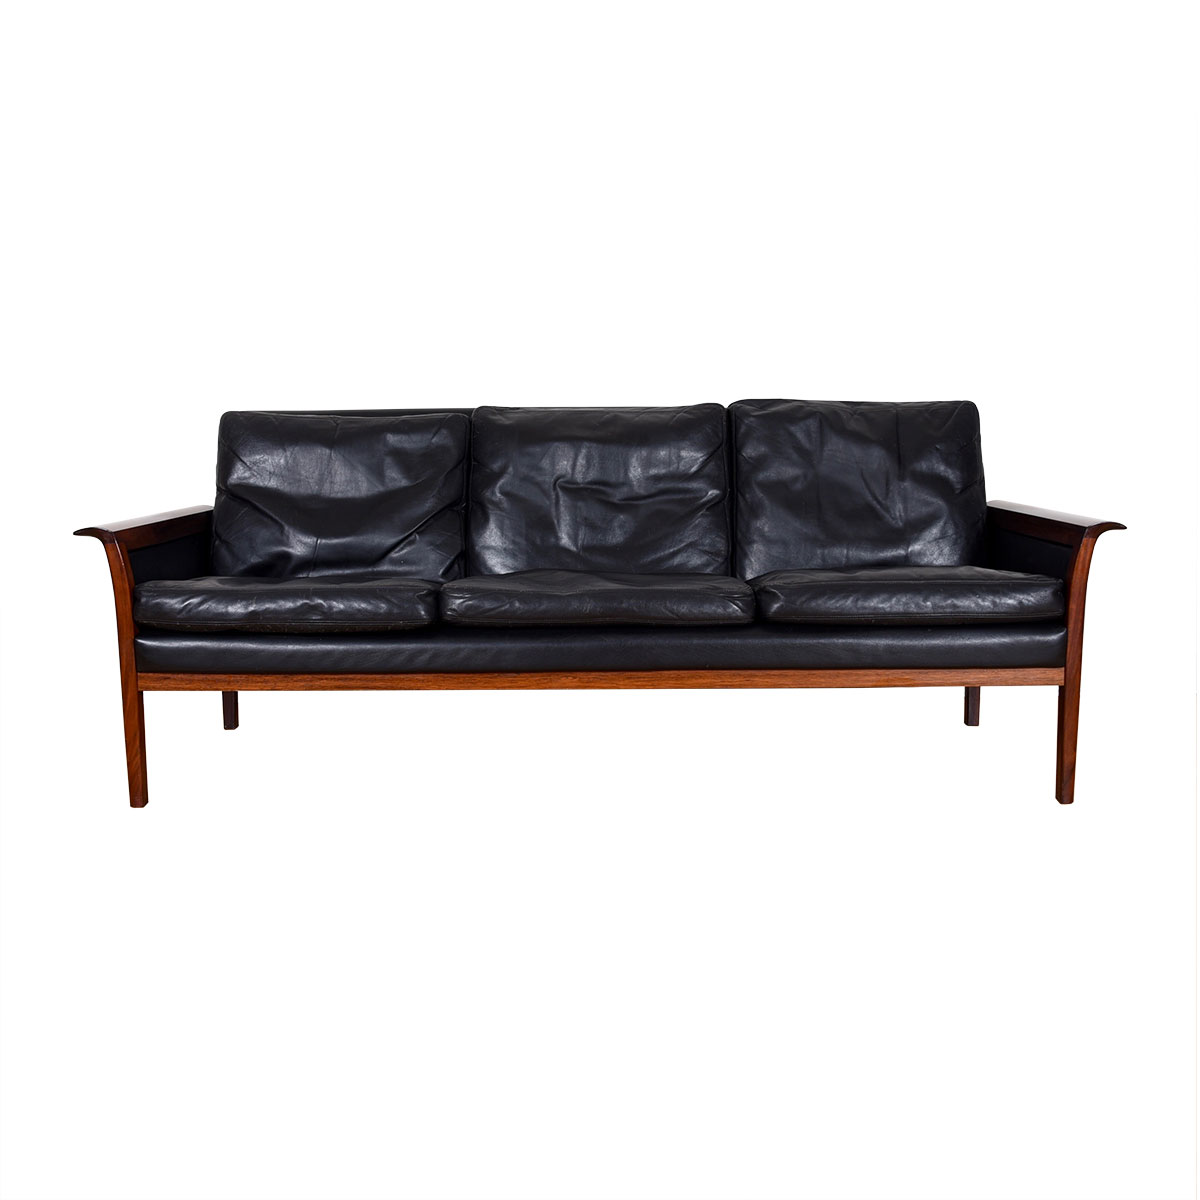 Compact Rosewood Black Leather Sofa by Hans Olsen